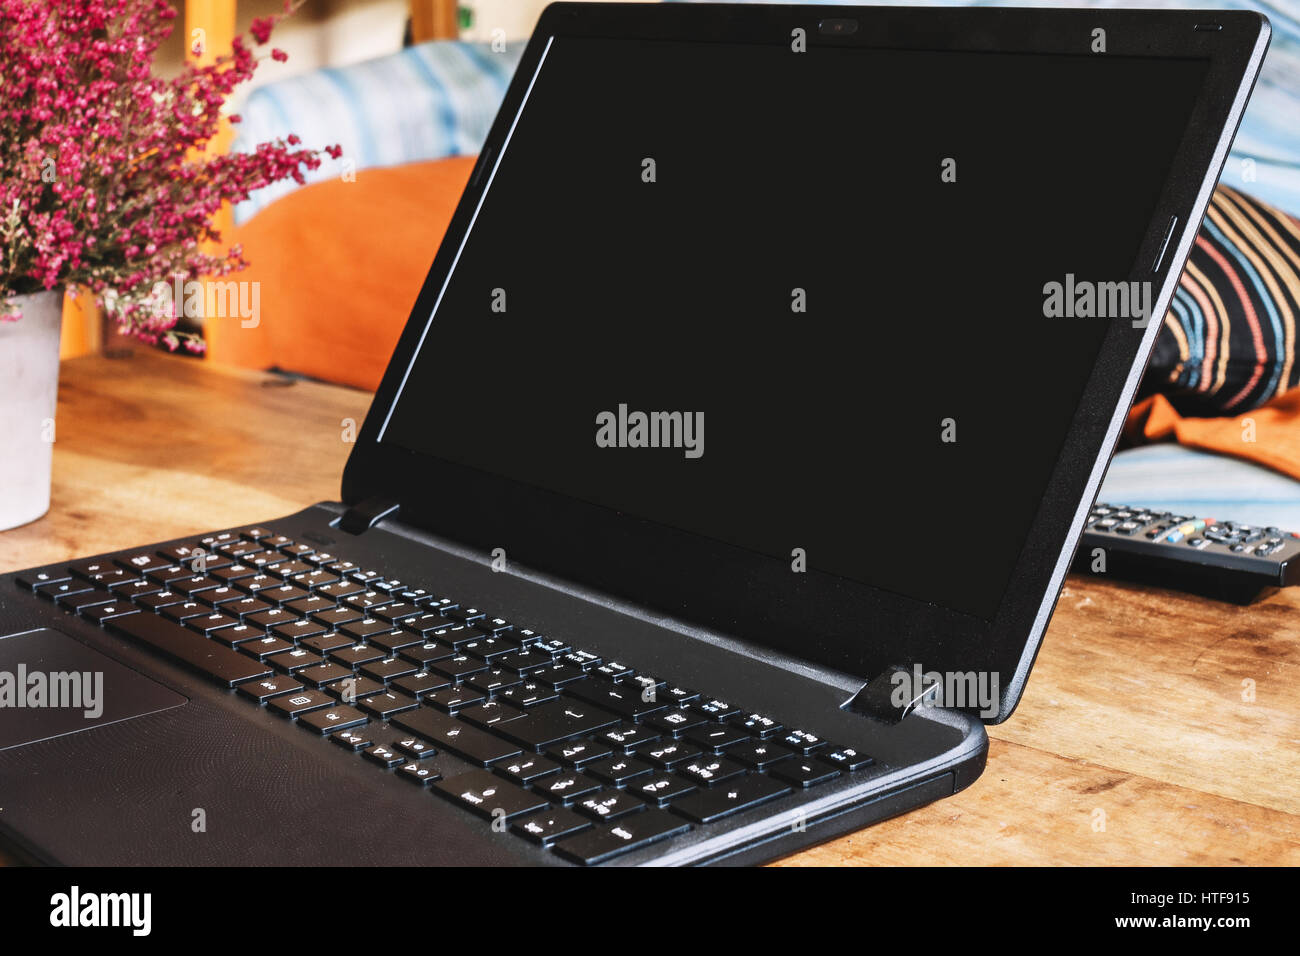 Laptop screen on wood table - Stock Image